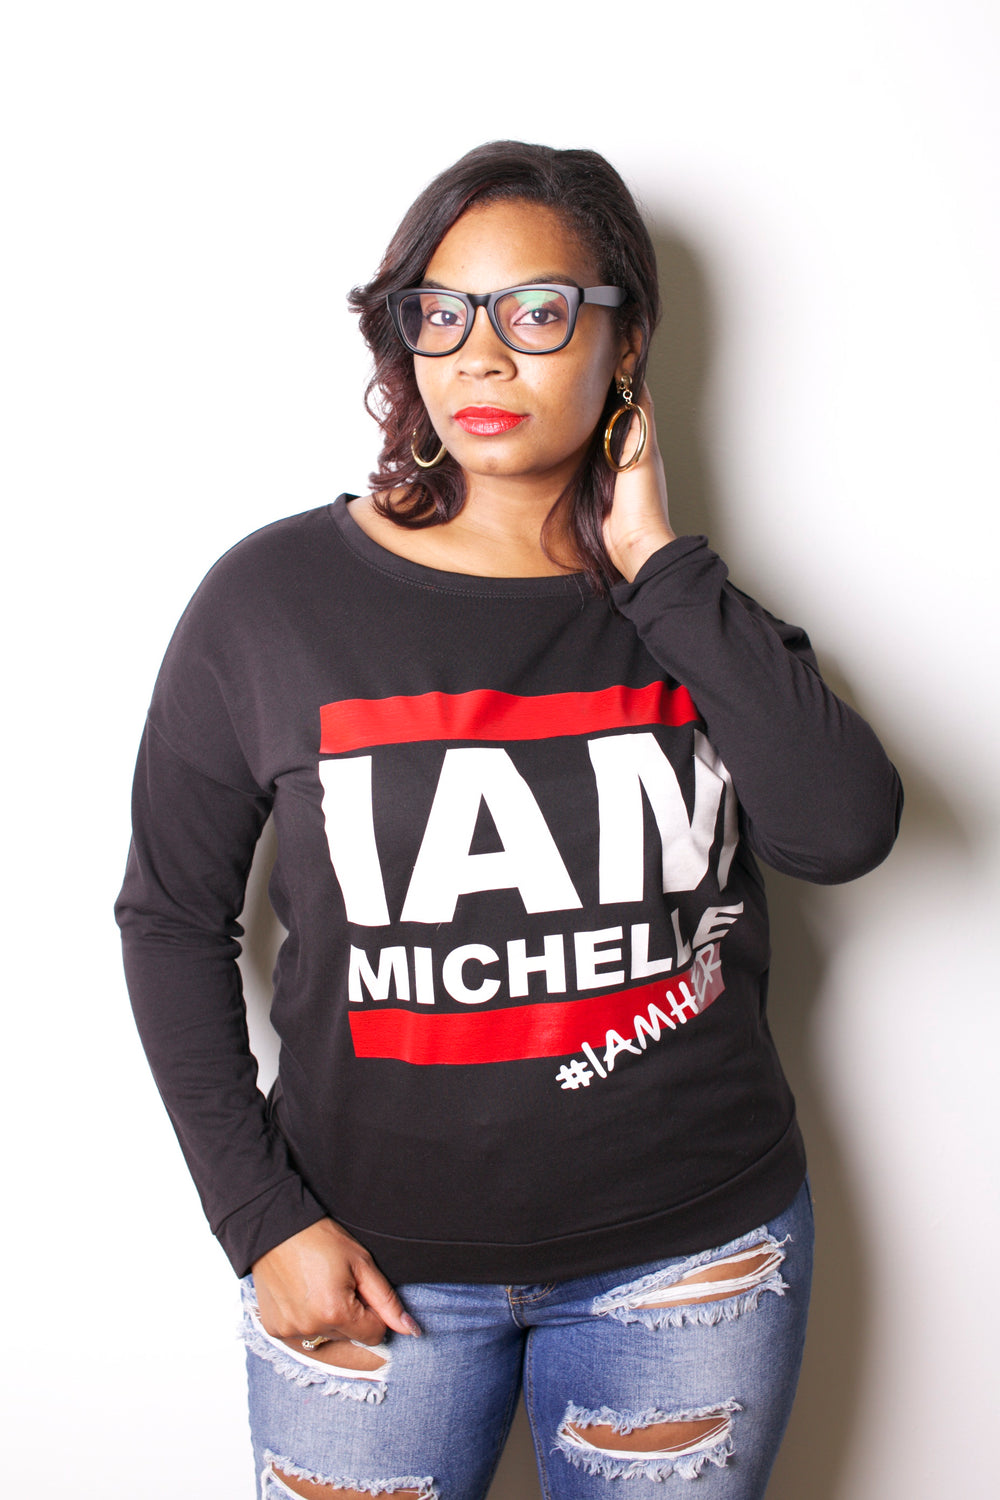 I AM MICHELLE - Women's Long Sleeve Tee - Black - I AM HER Apparel, LLC